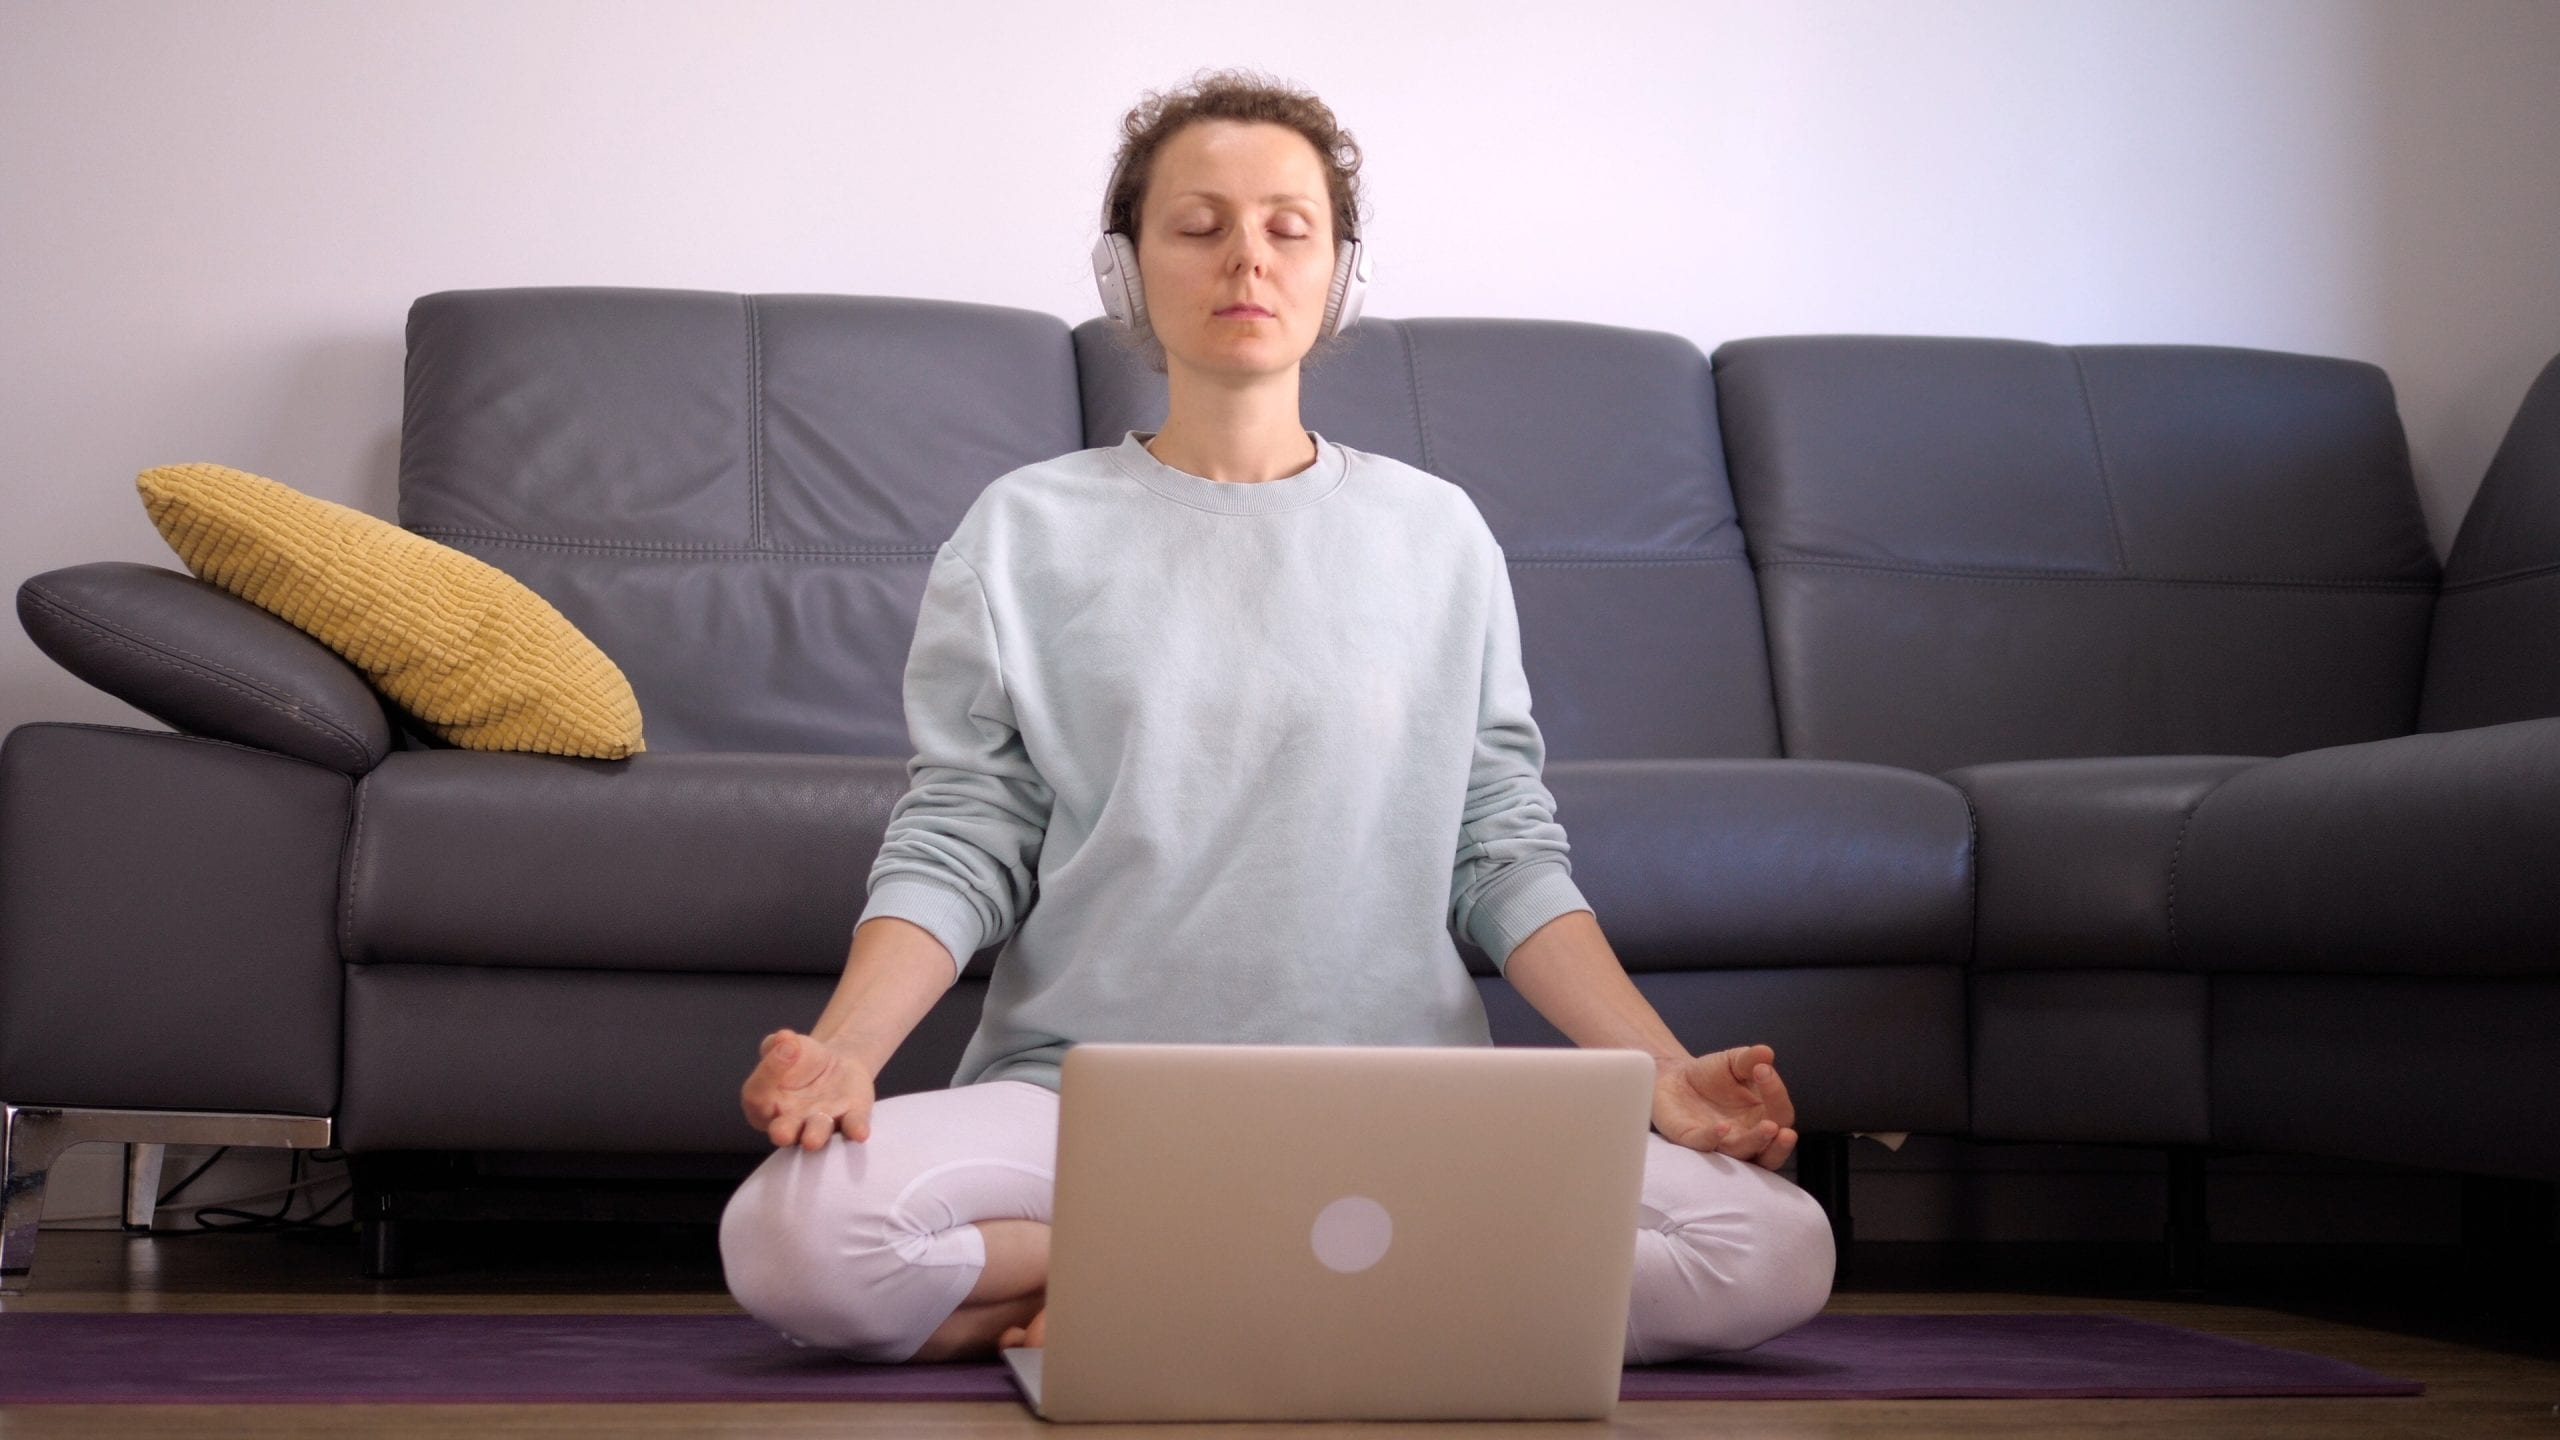 mindfulness guided meditation practicing by woman sitting on floor with headphones and laptop